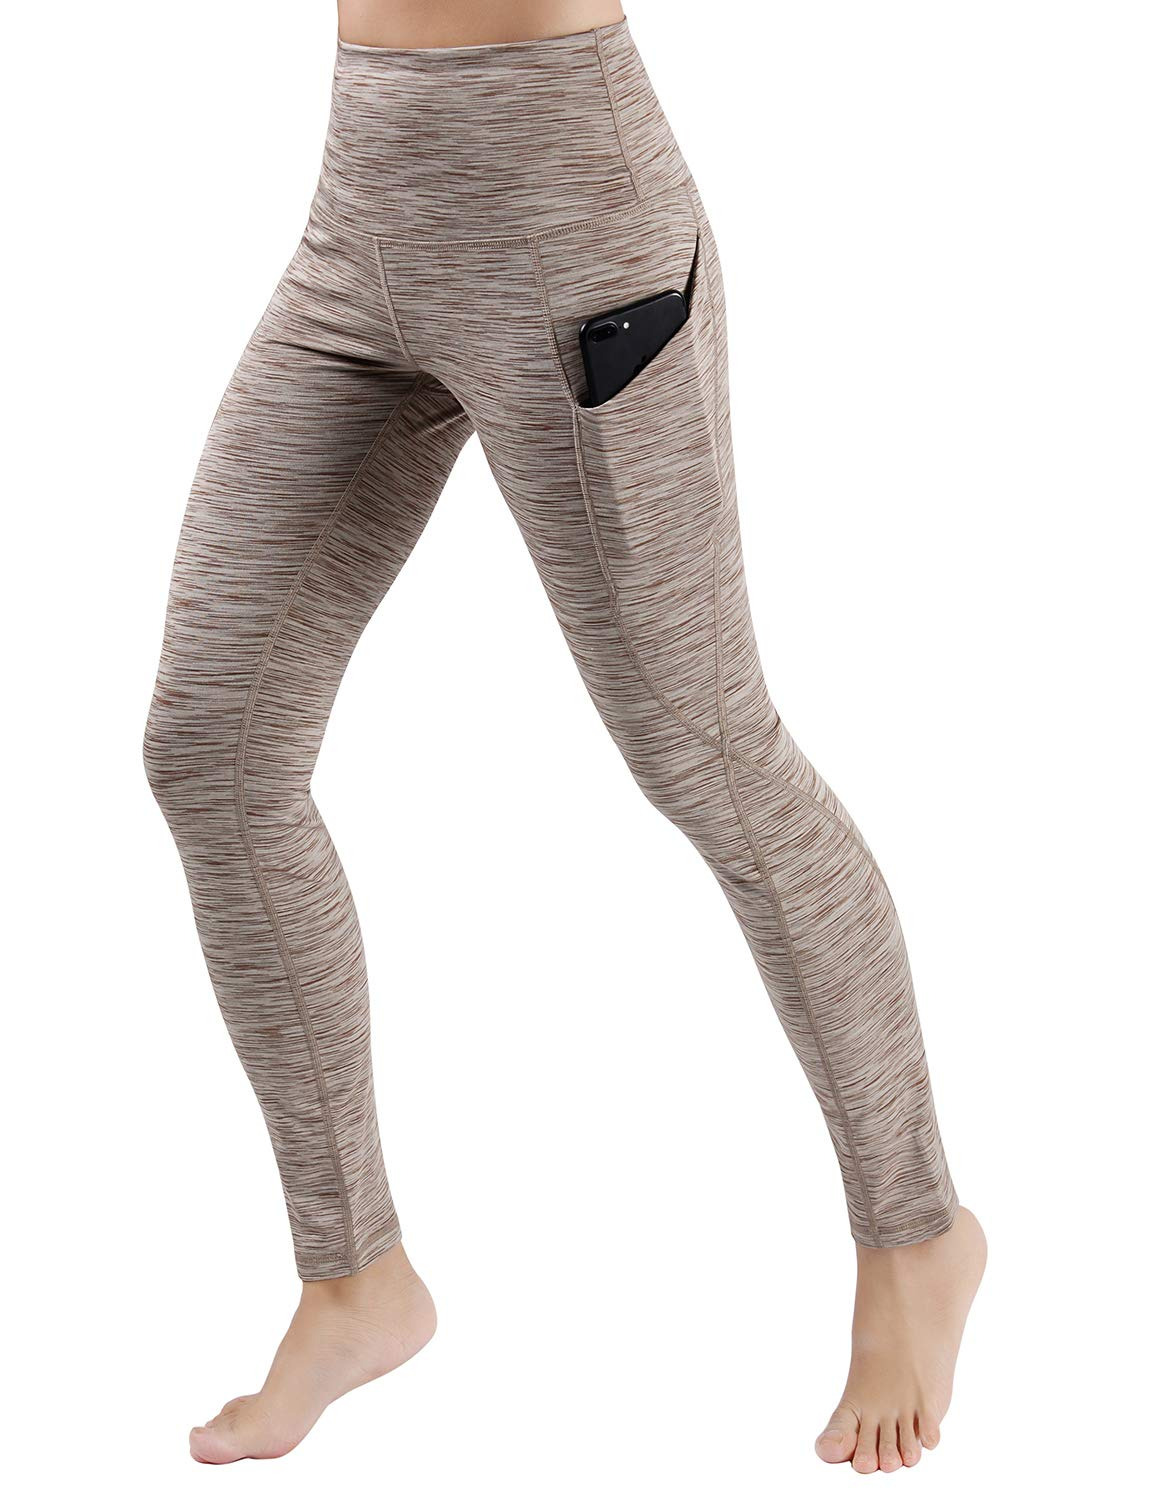 ODODOS Women's High Waist Yoga Pants with Pockets,Tummy Control,Workout Pants Running 4 Way Stretch Yoga Leggings with Pockets,SpaceDyeBrown,X-Small by ODODOS